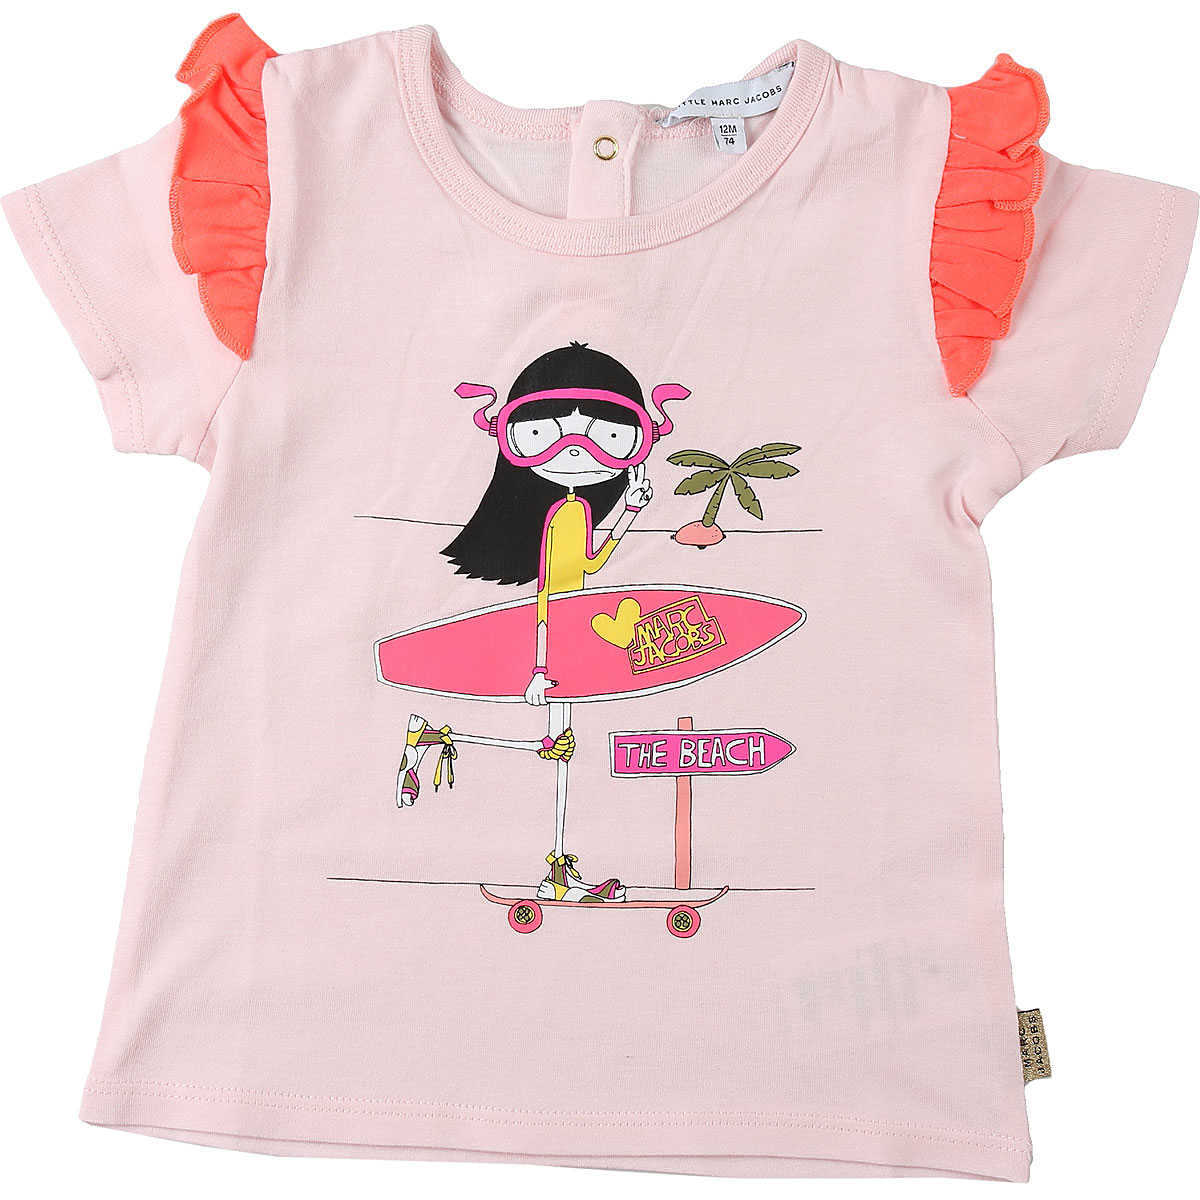 Marc Jacobs Baby T-Shirt for Girls On Sale Pink - GOOFASH - Womens T-SHIRTS